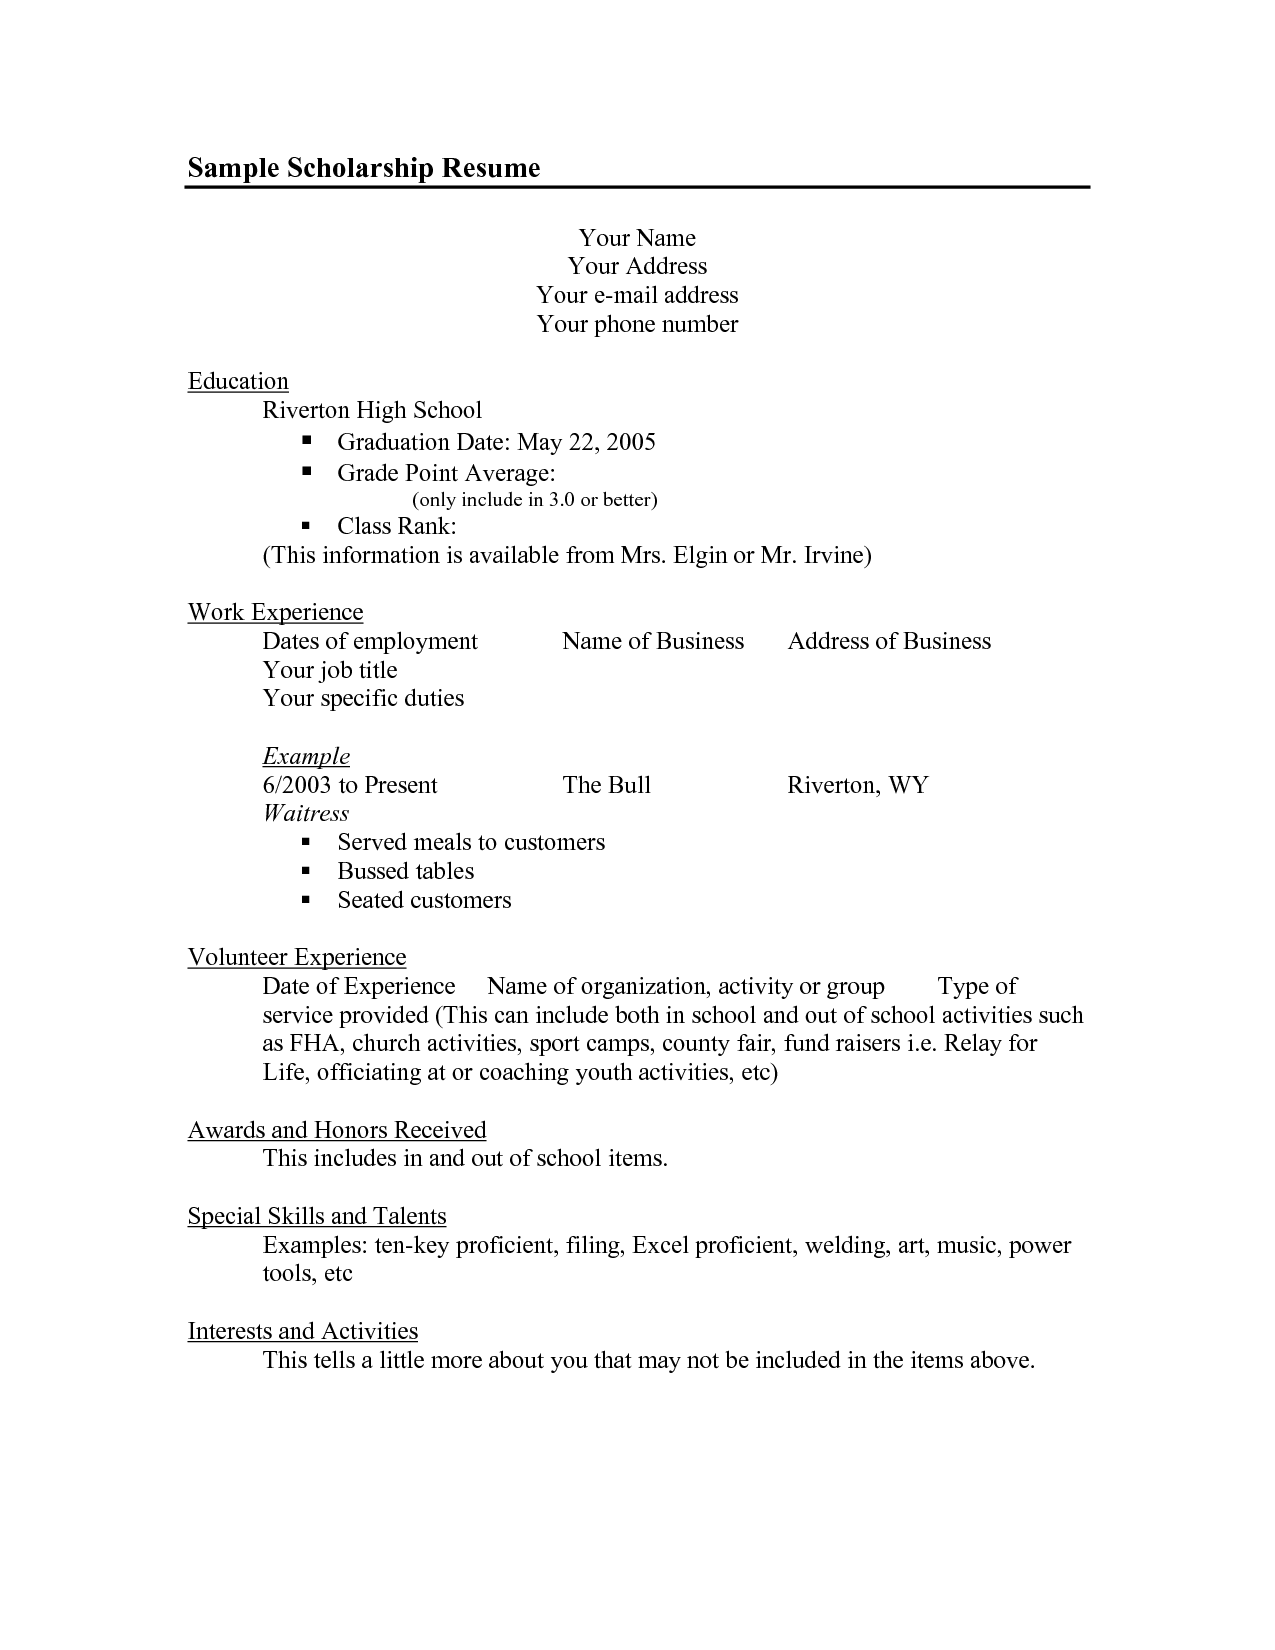 scholarship resume template fsgcrcom mvxhldbr high school - Resume Template For High School Graduate